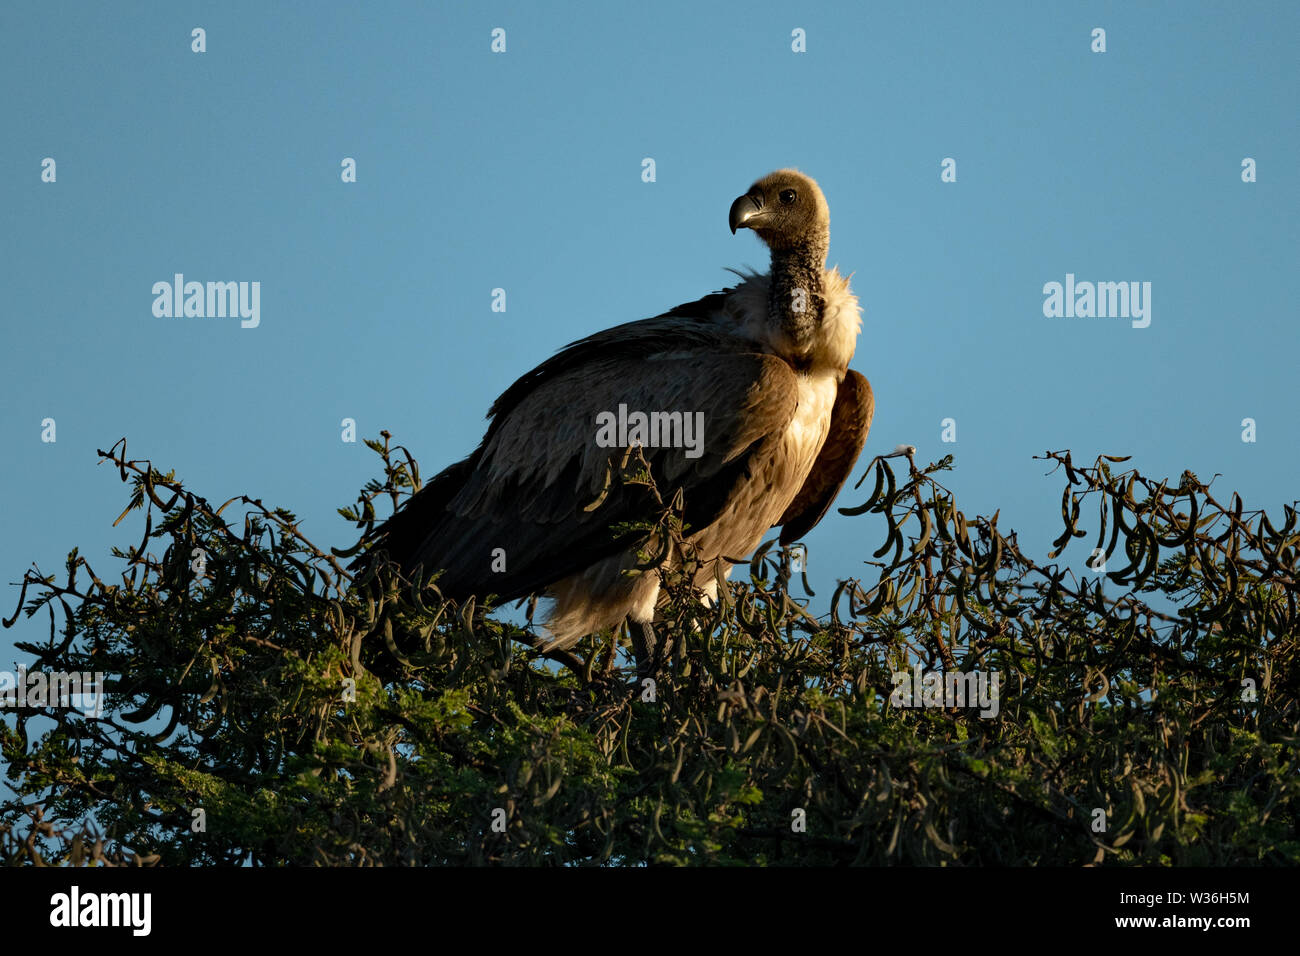 African white-backed vulture in tree turns head - Stock Image